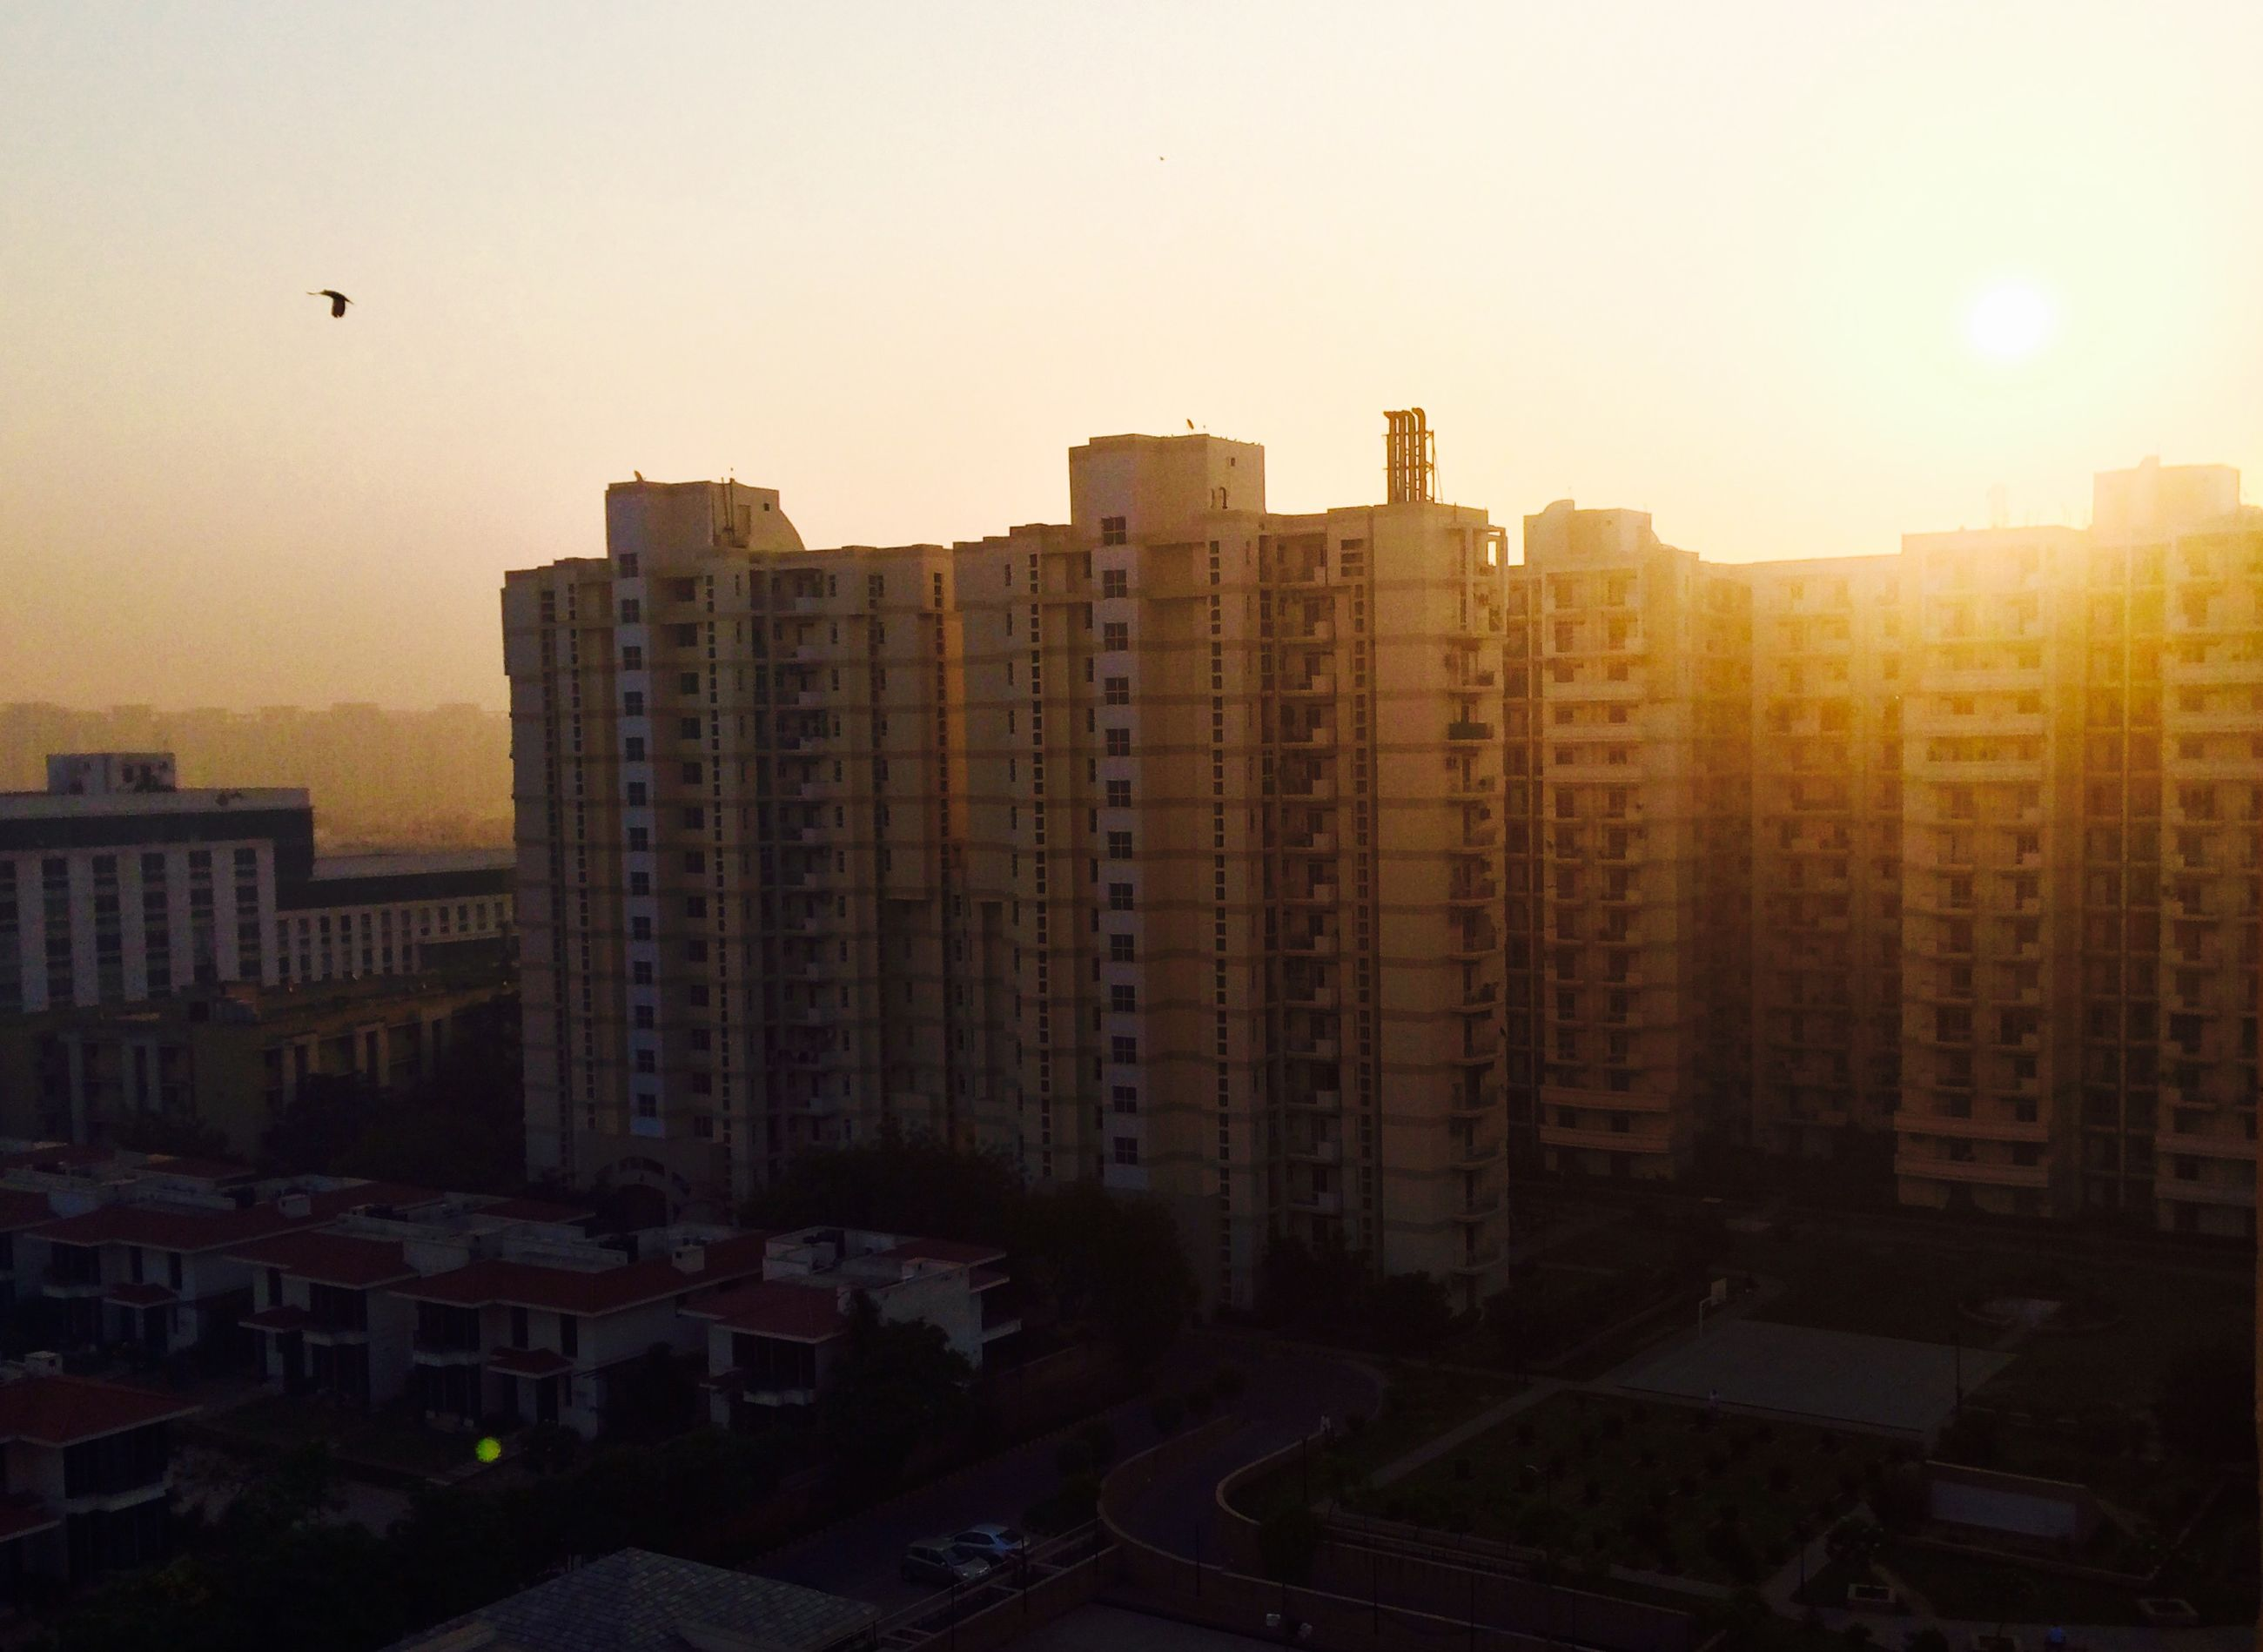 building exterior, architecture, built structure, city, clear sky, sunset, building, sunlight, sun, cityscape, skyscraper, residential building, sky, office building, modern, city life, residential structure, outdoors, residential district, tower